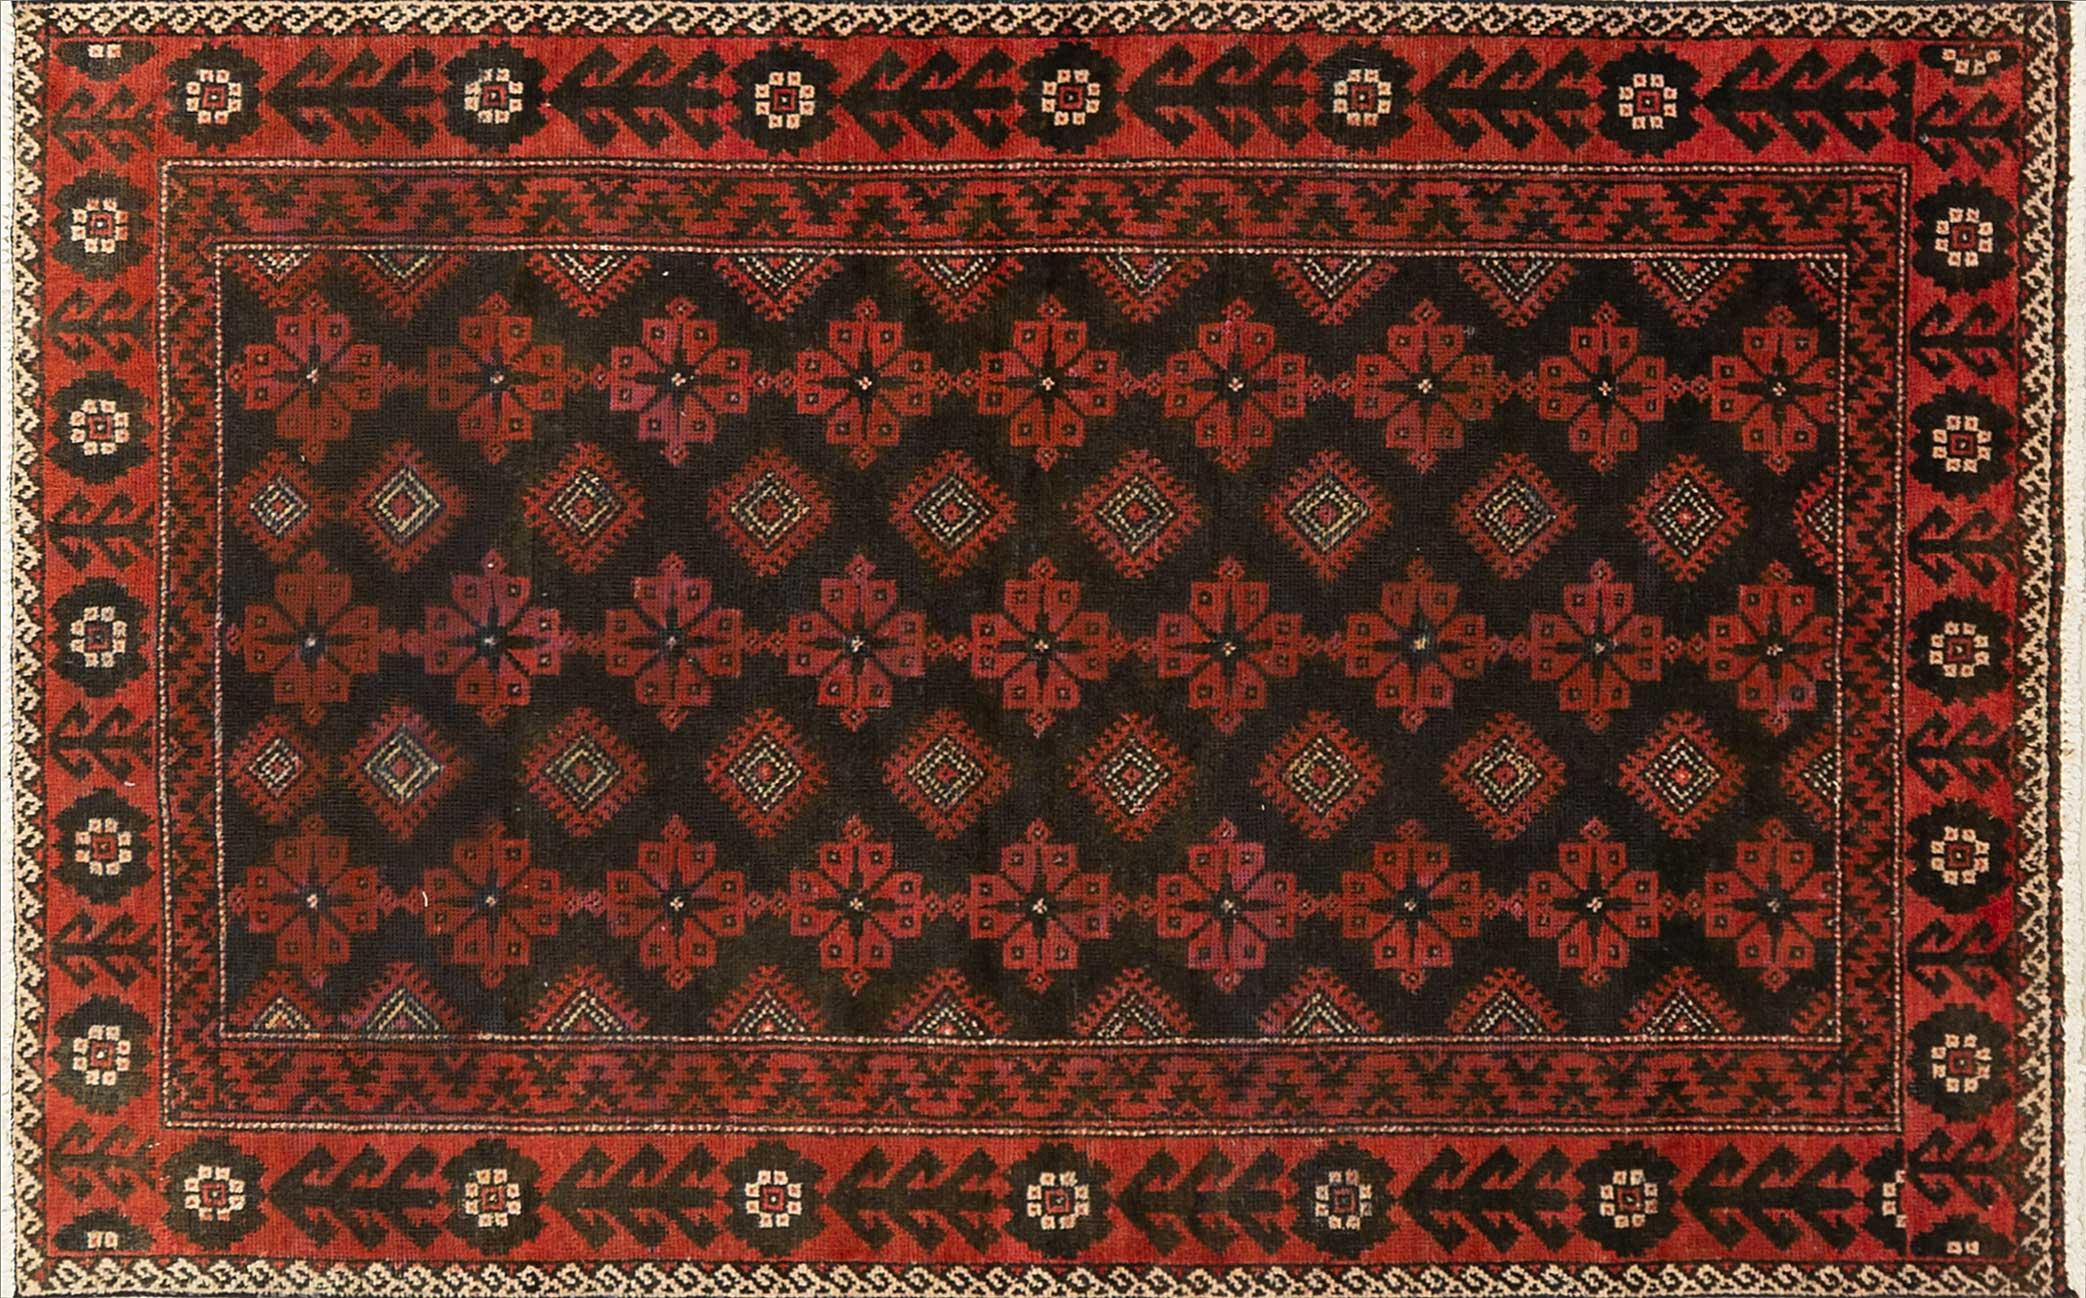 A Persian Hand Knotted Beluchi Rug, 193 x 123